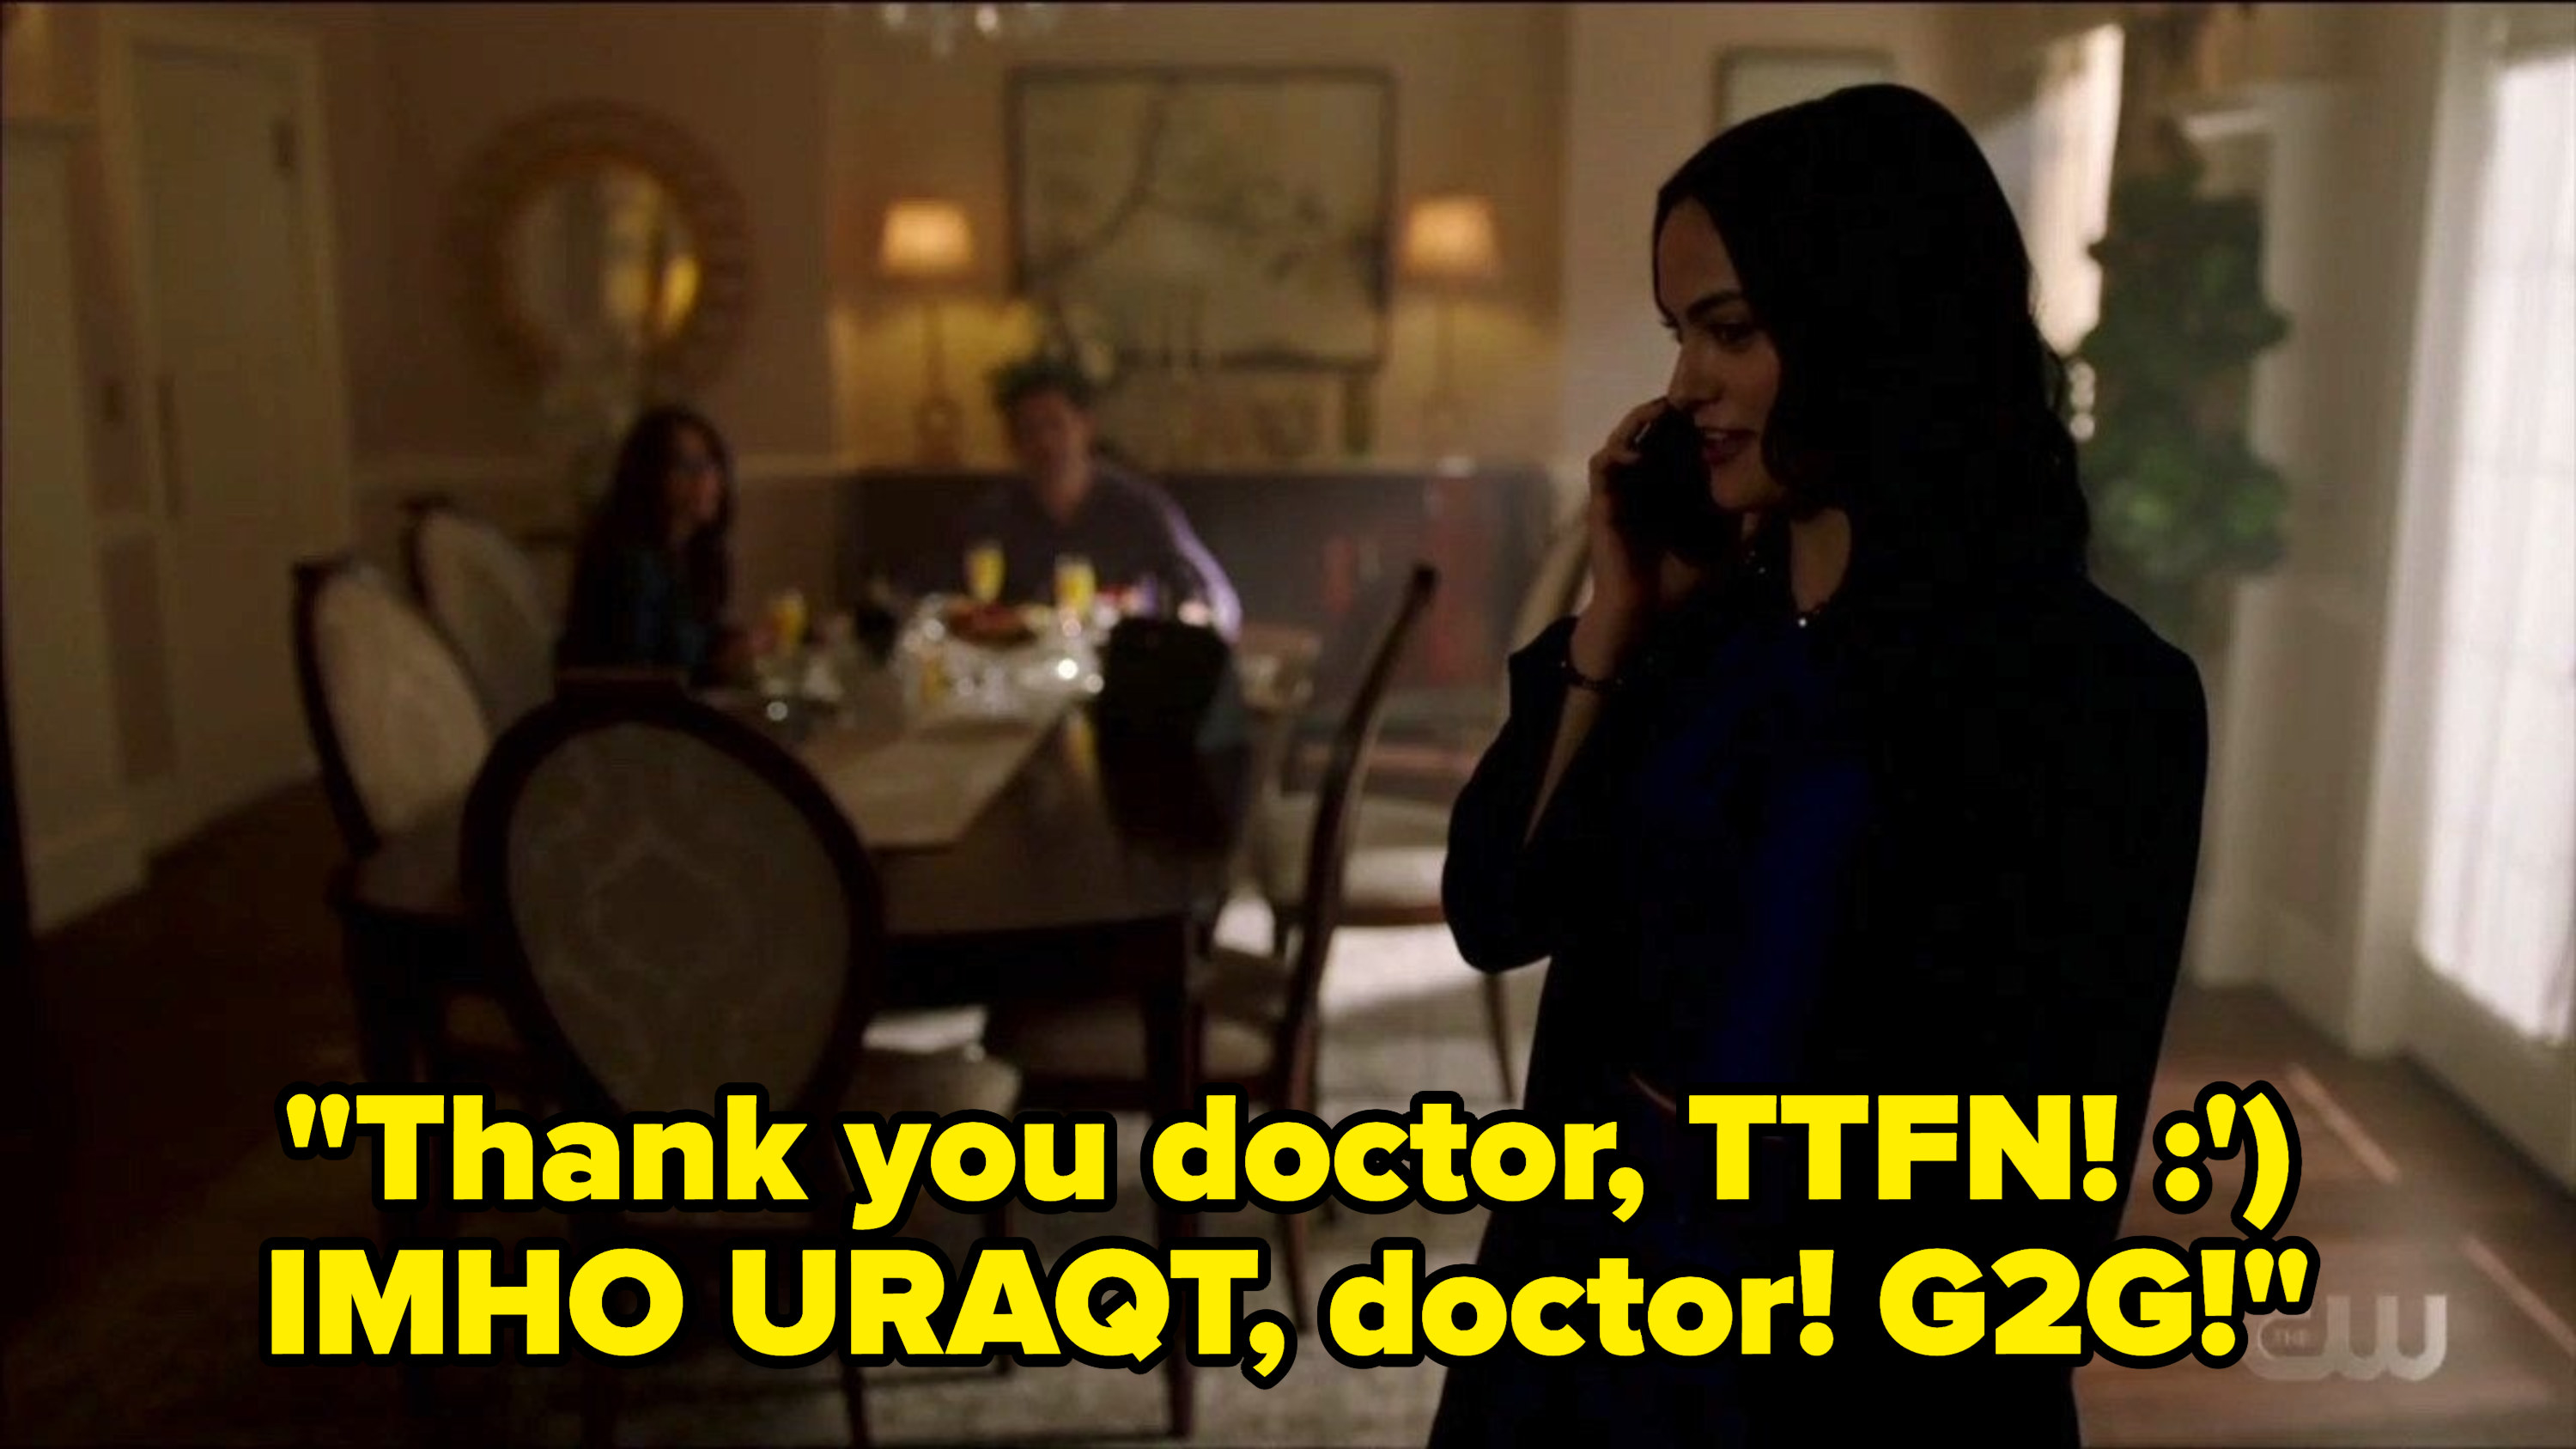 Veronica talking to the doctor with internet lingo